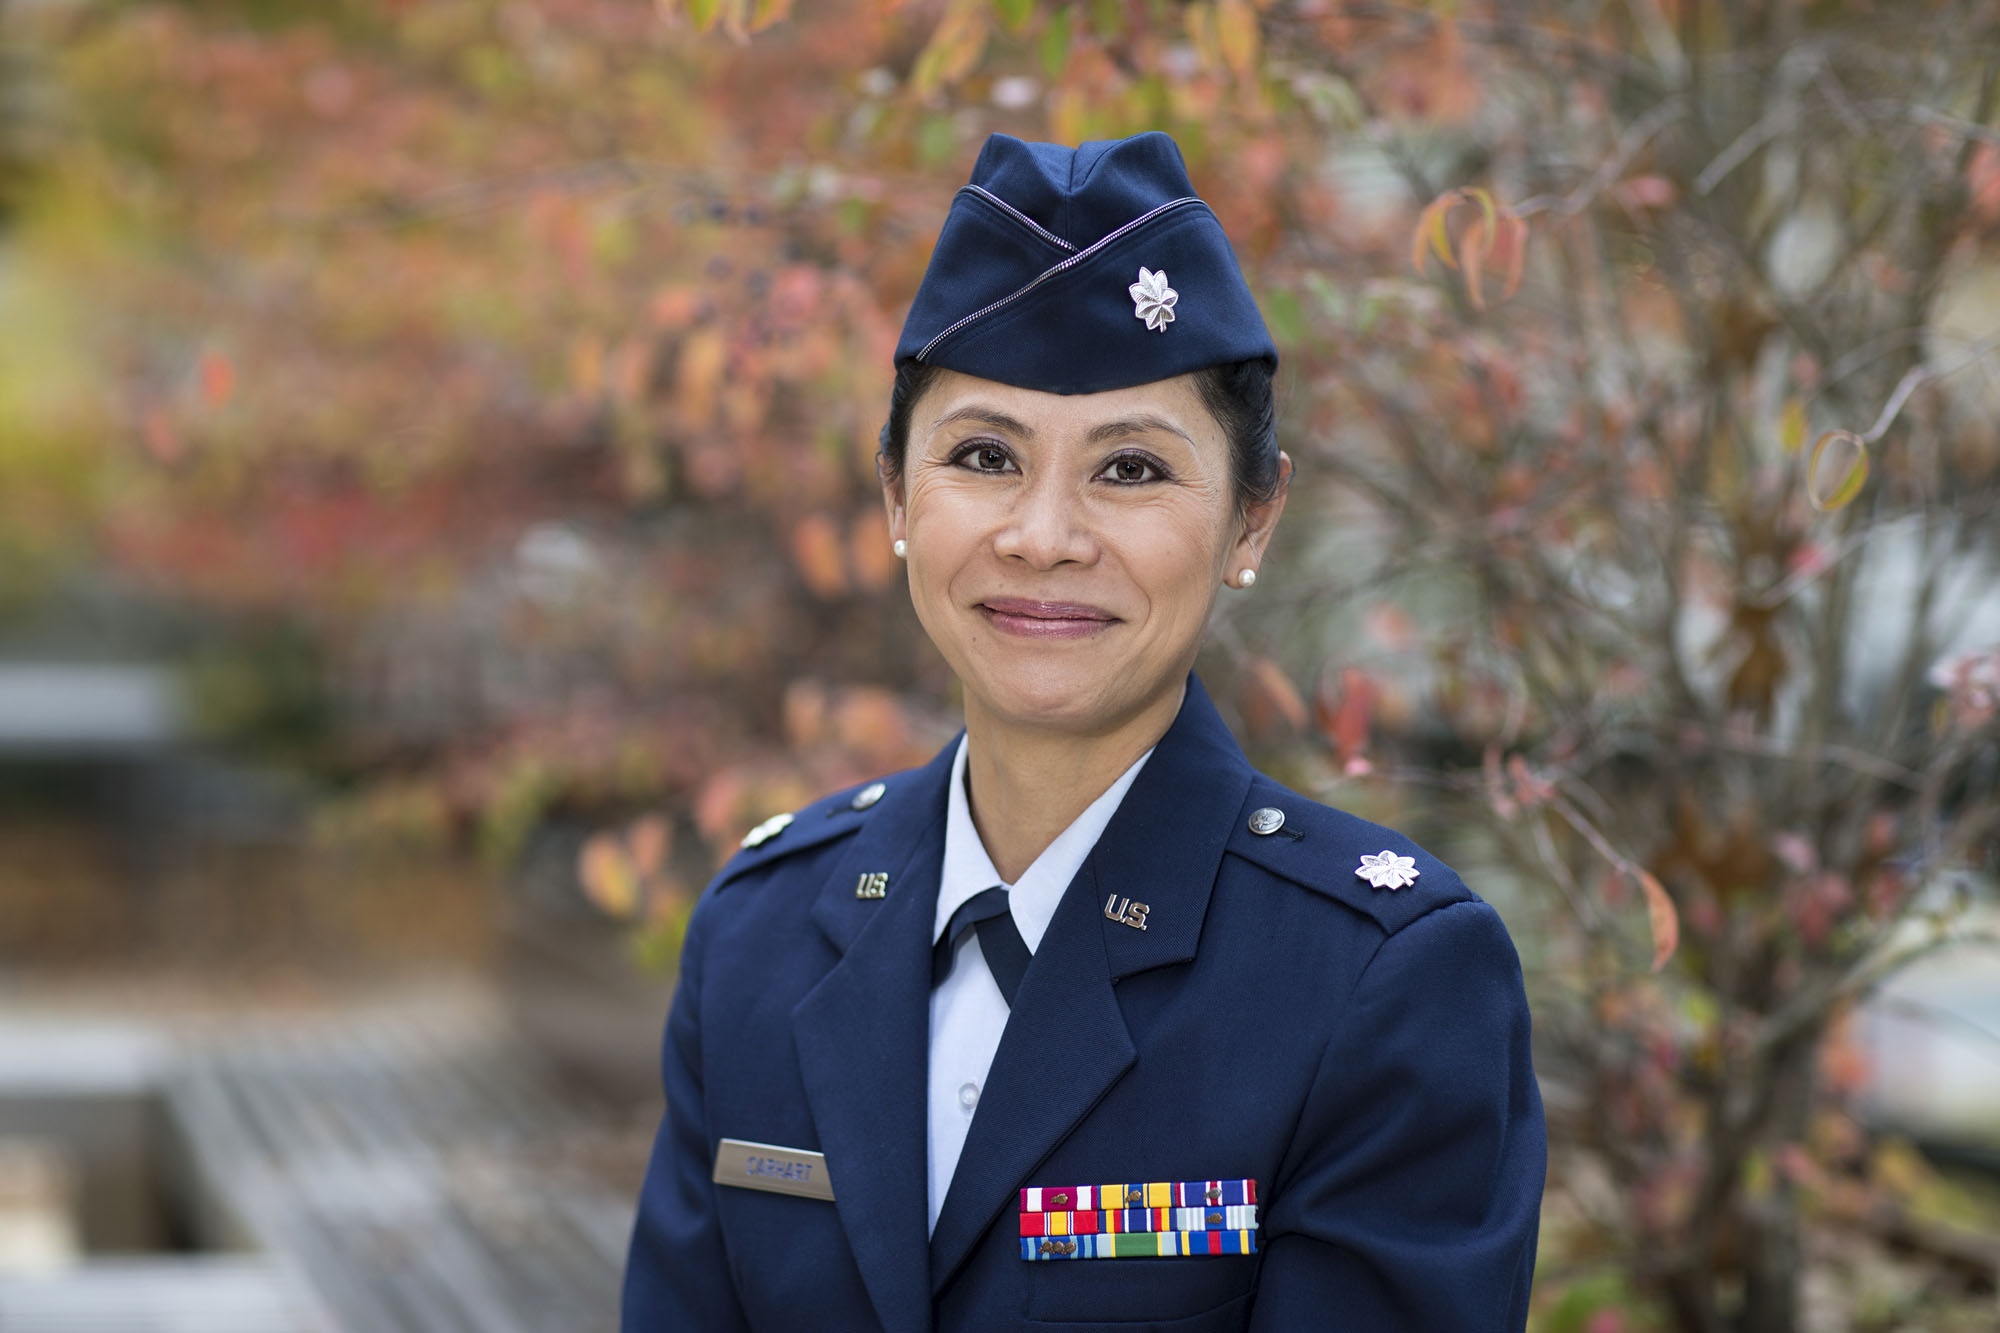 Air Force Lt. Col. Mia Carhart